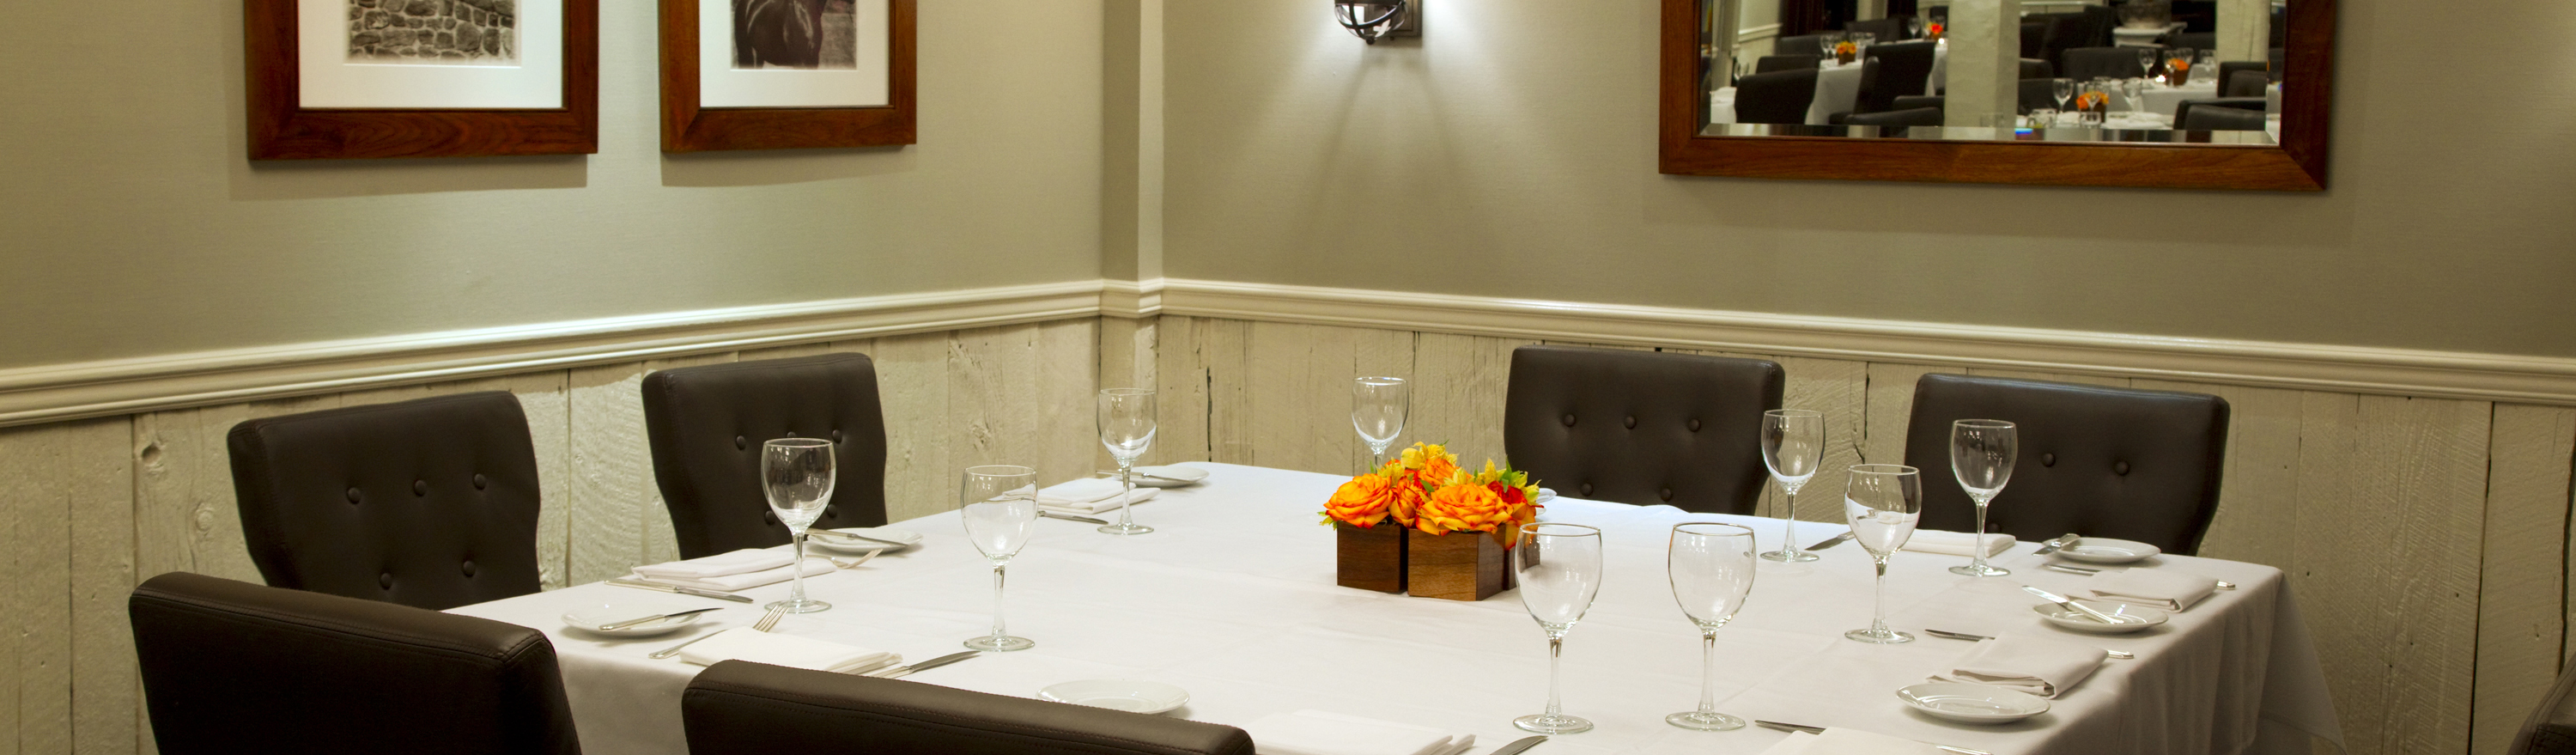 Private Dining Venue For Rent In Chappaqua